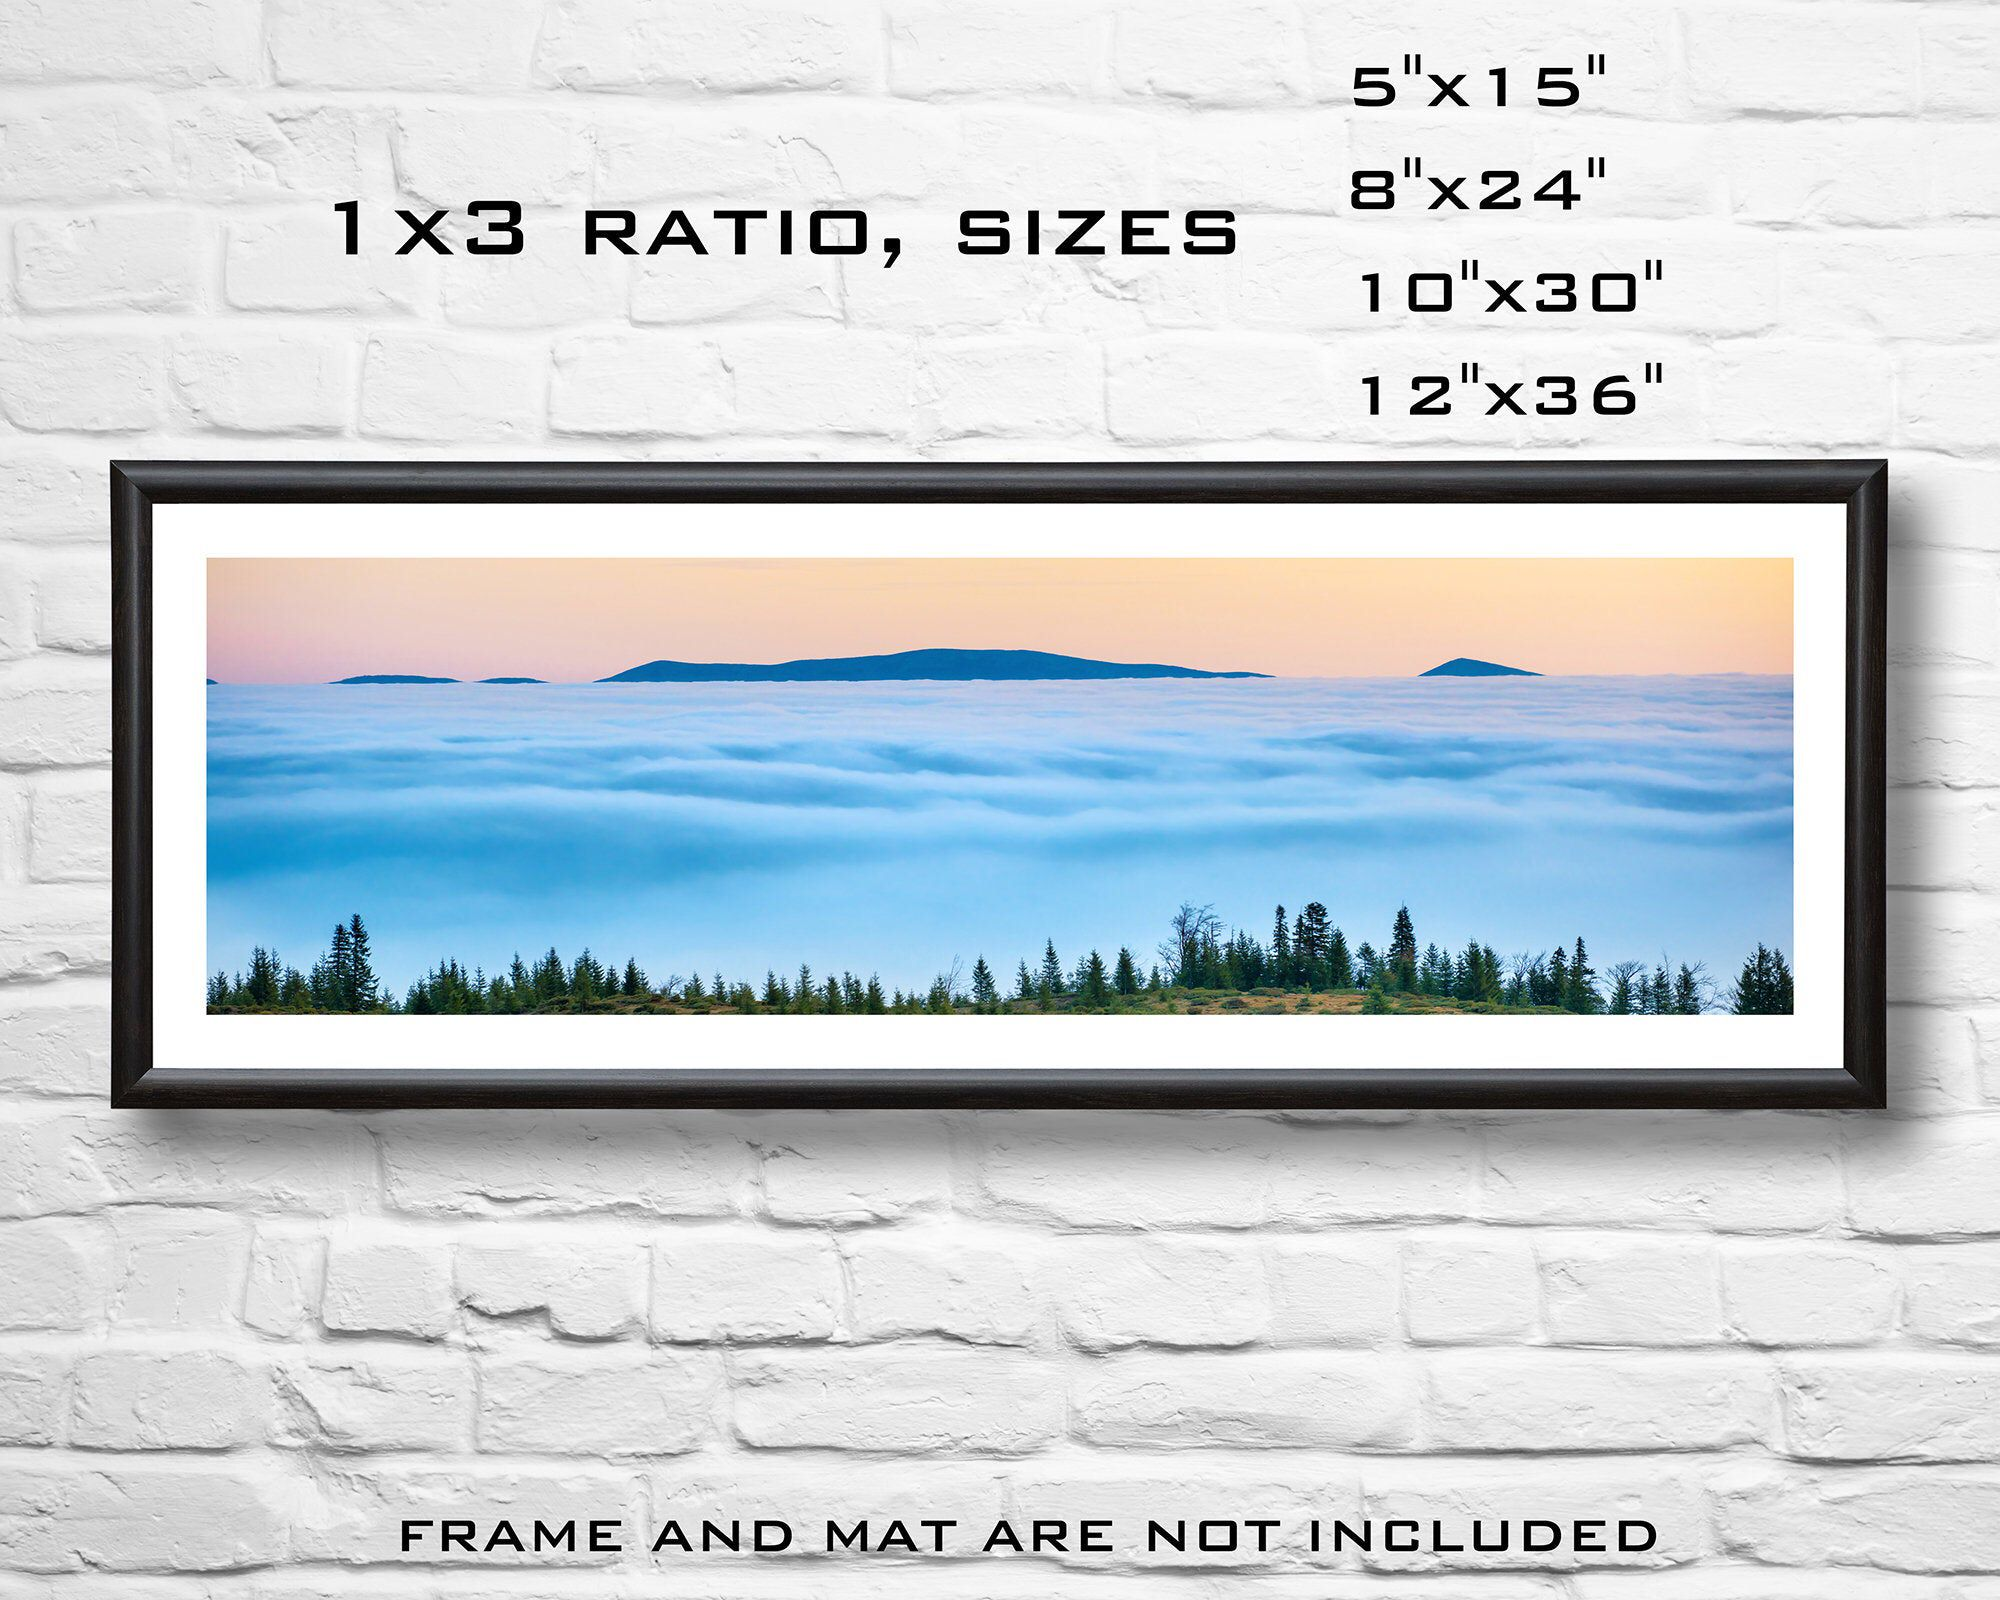 7 99usd Only Top Of The Mountains In The Clouds Panorama With Forest And Sunset Sky Sunset Wall Art Panoramic Print Panorama